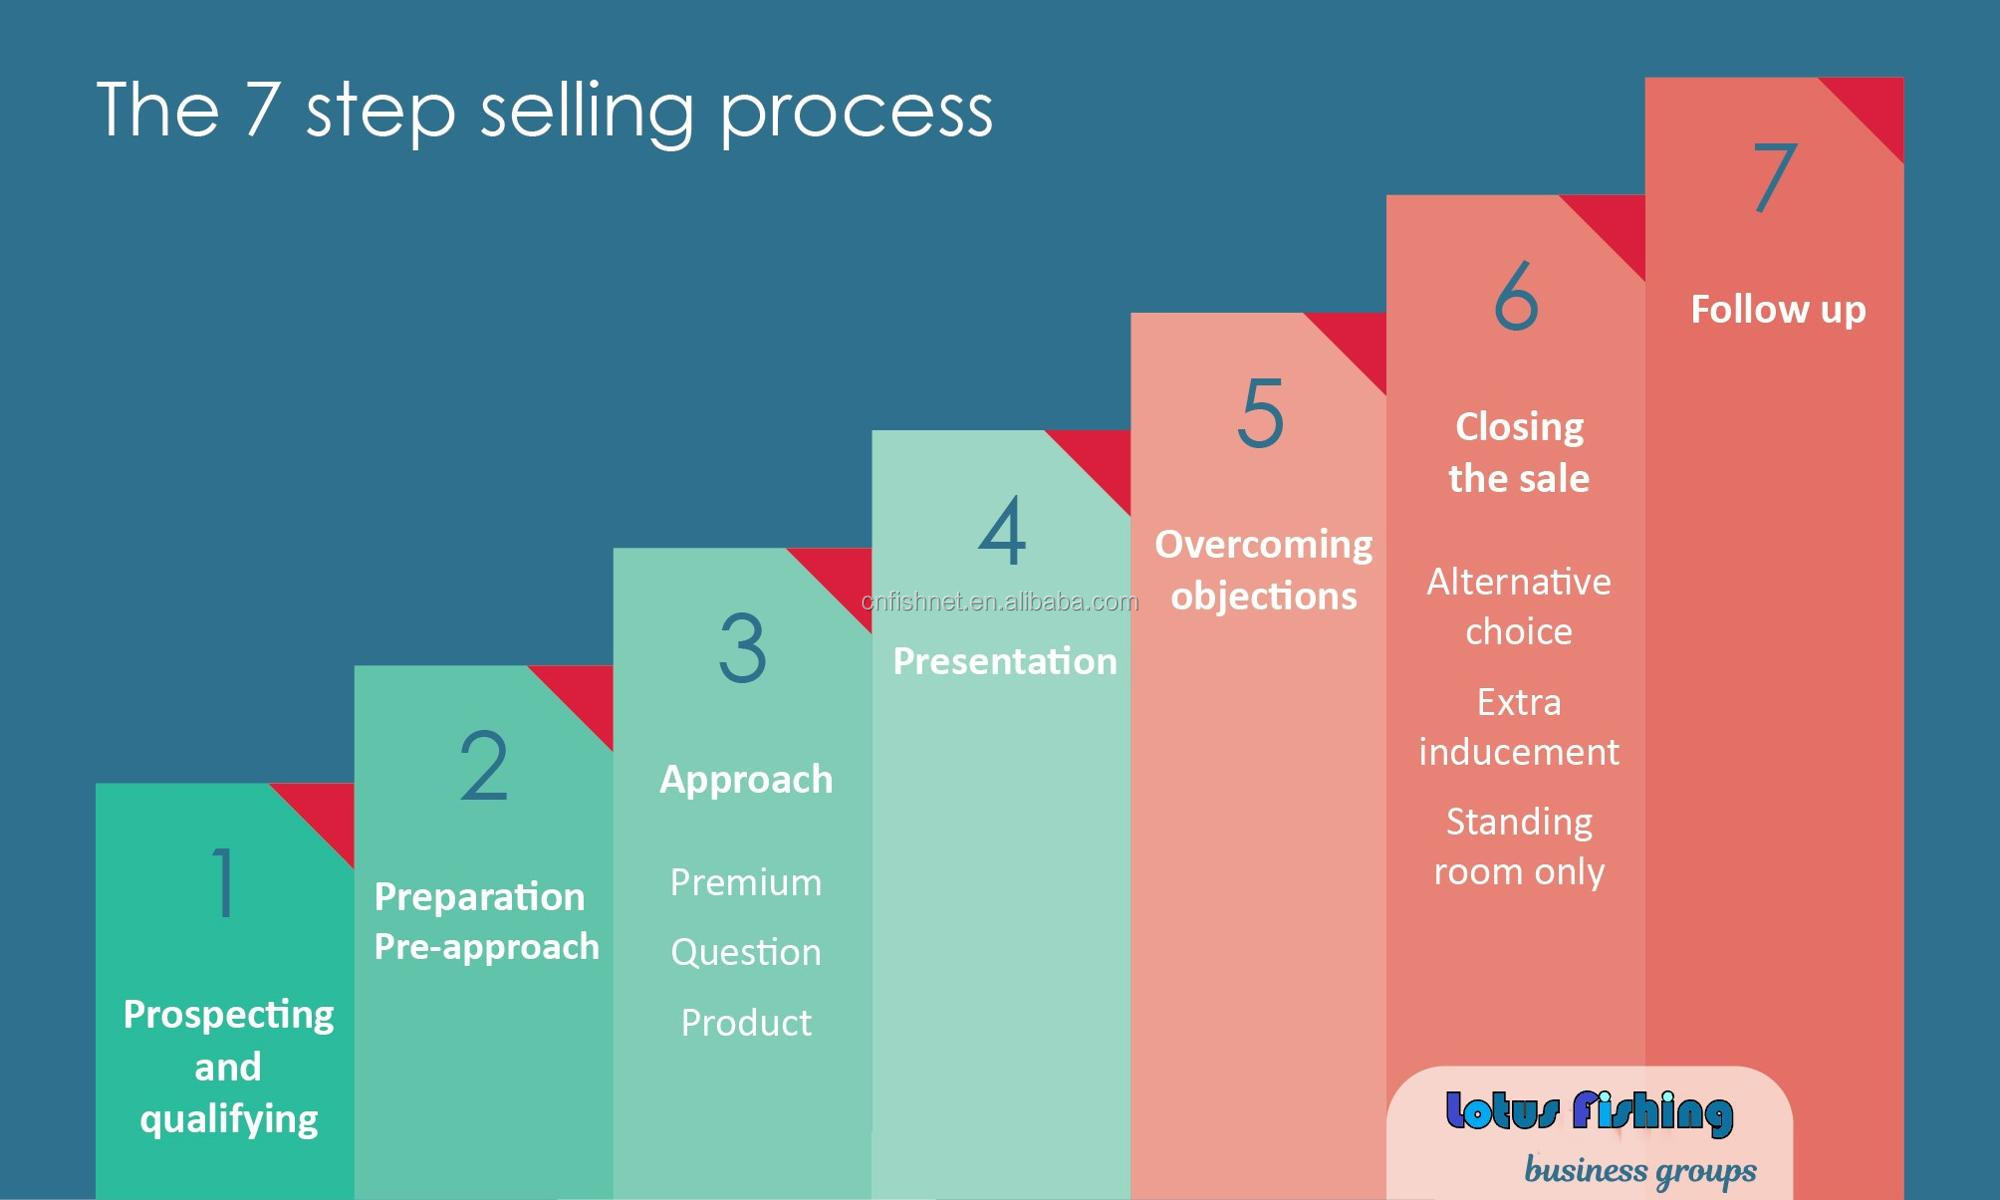 7-steps-selling process.jpg